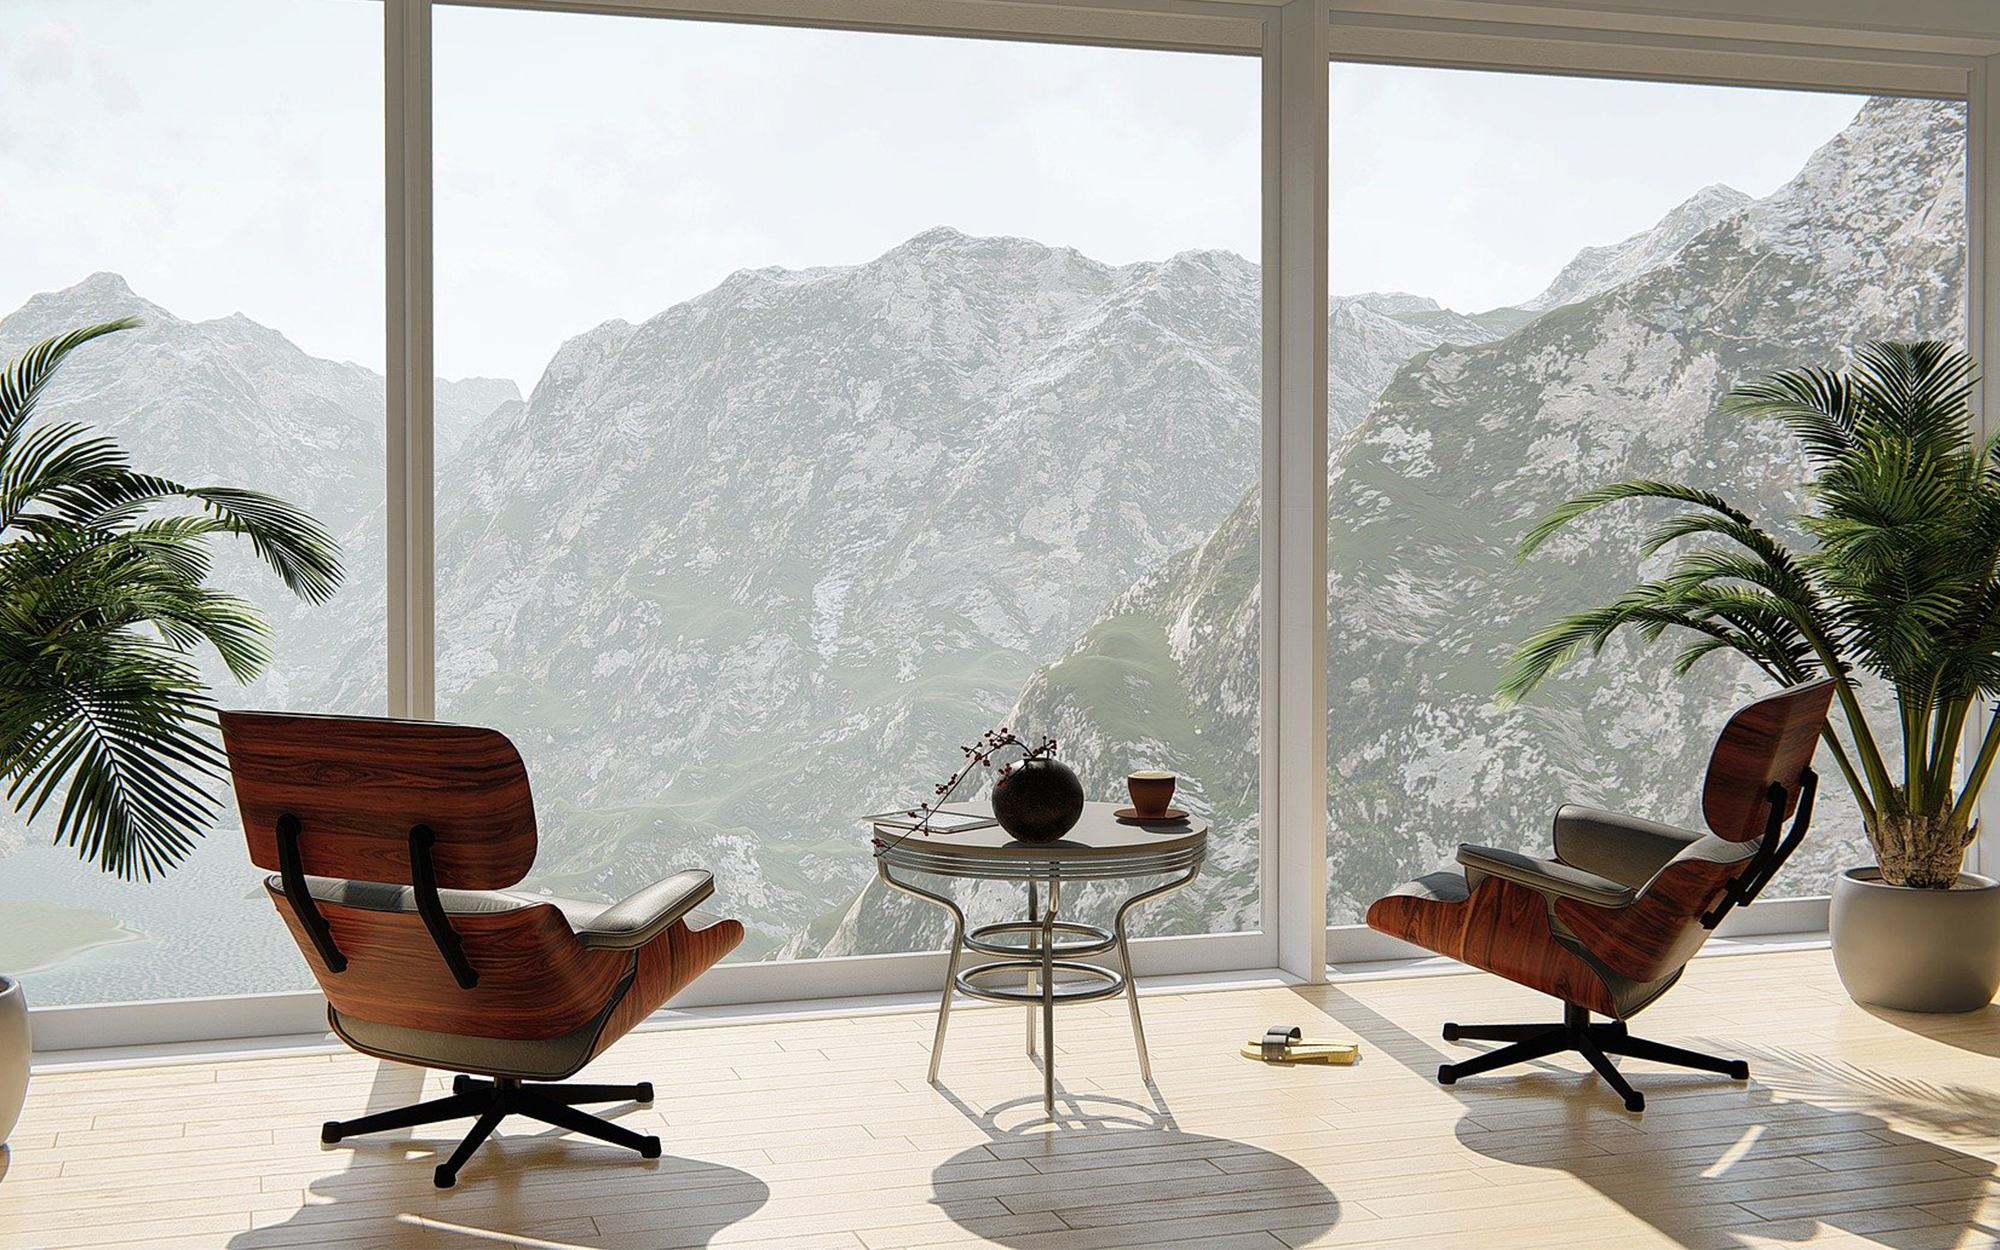 Eames Lounge Chair in a Mid-Century Modern Home